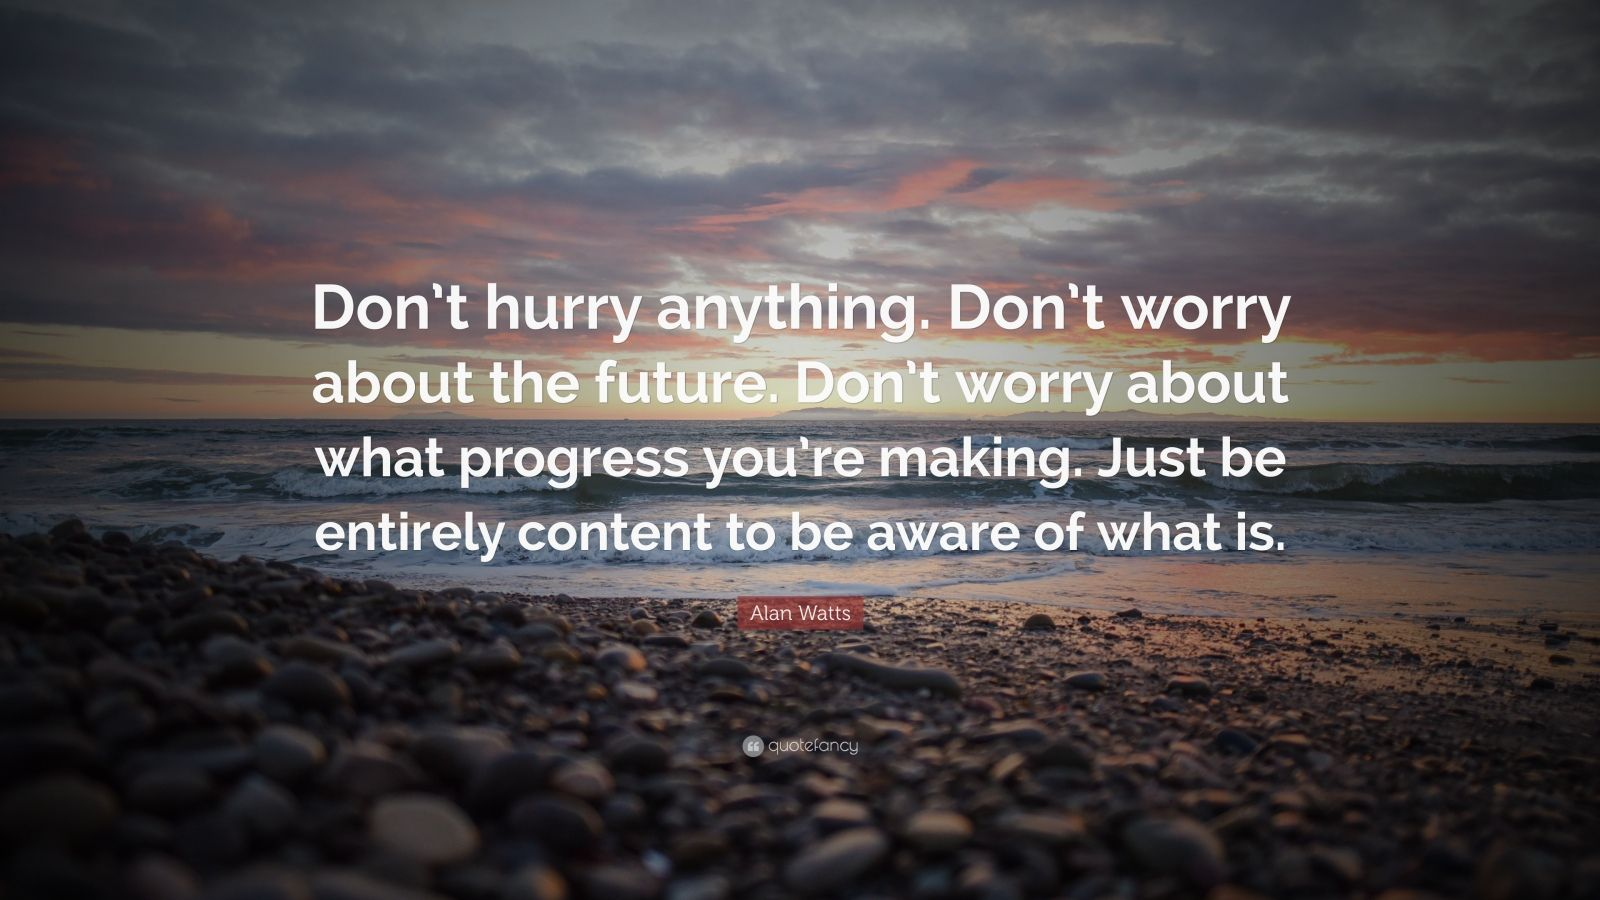 "Alan Watts Quote: ""Don't hurry anything. Don't worry about the future. Don't worry about what progress you're making. Just be entirely content to be aware of what is."""